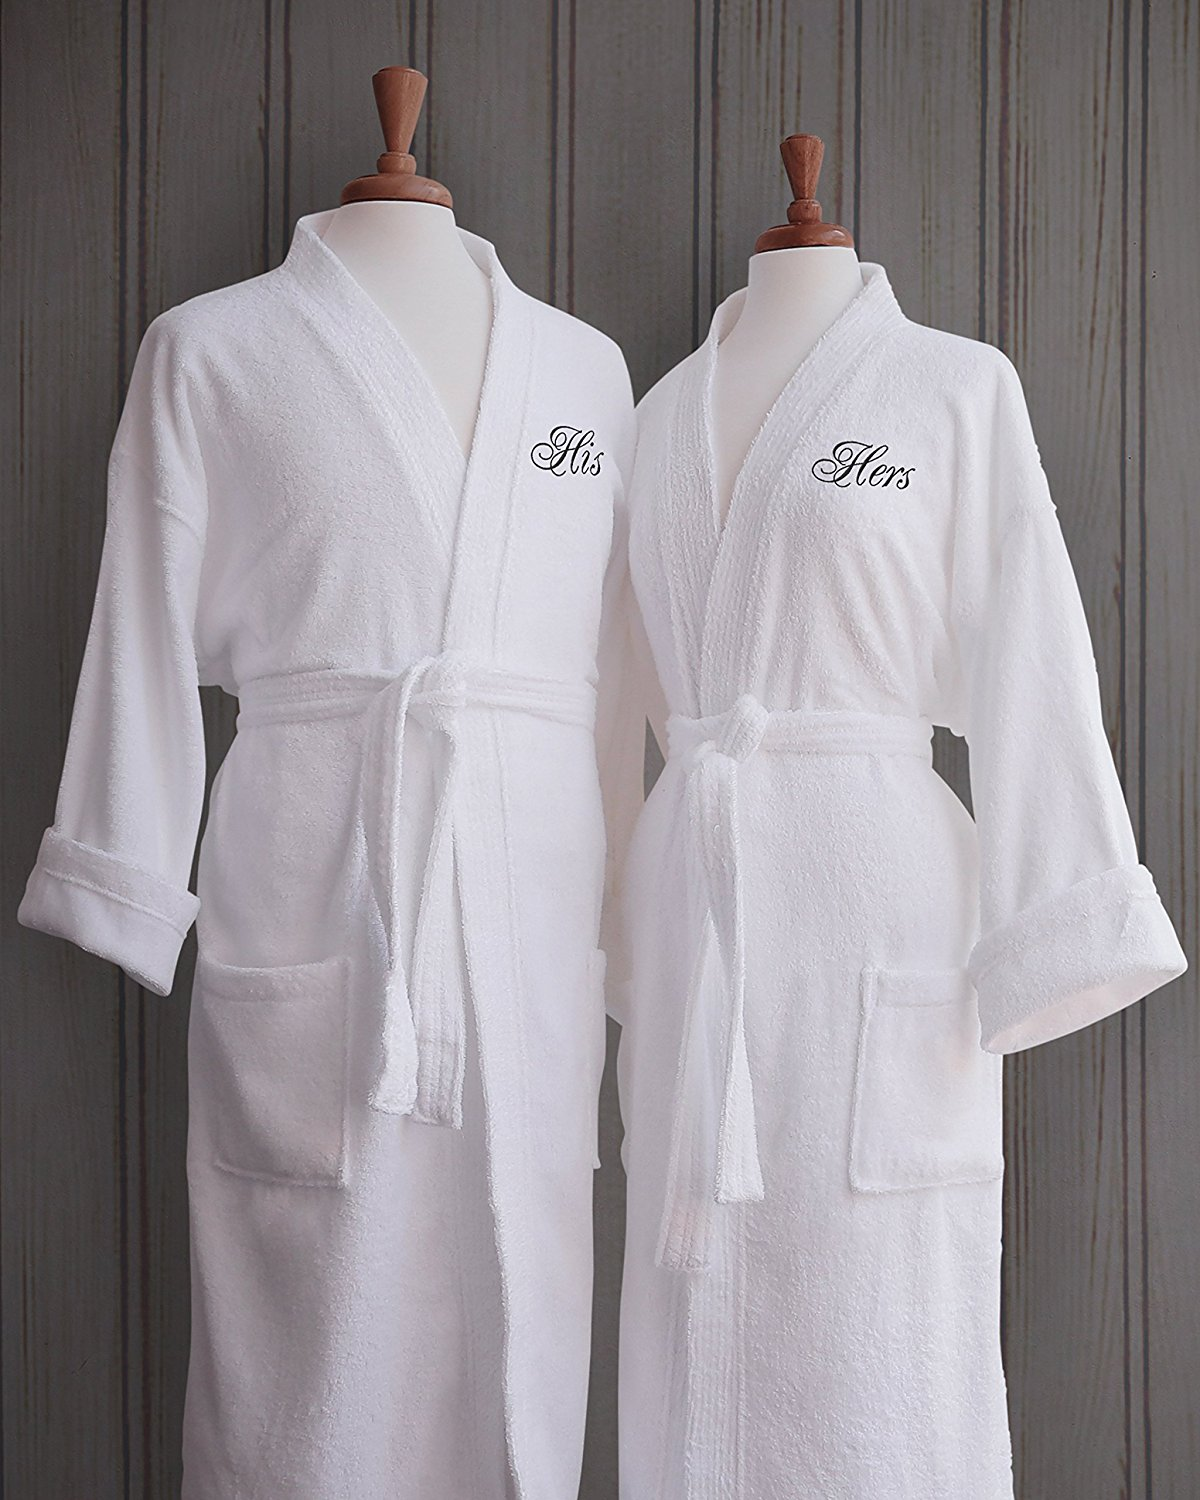 Limited Time Deals New Deals Everyday Bride Groom Robes Off 79 Buy